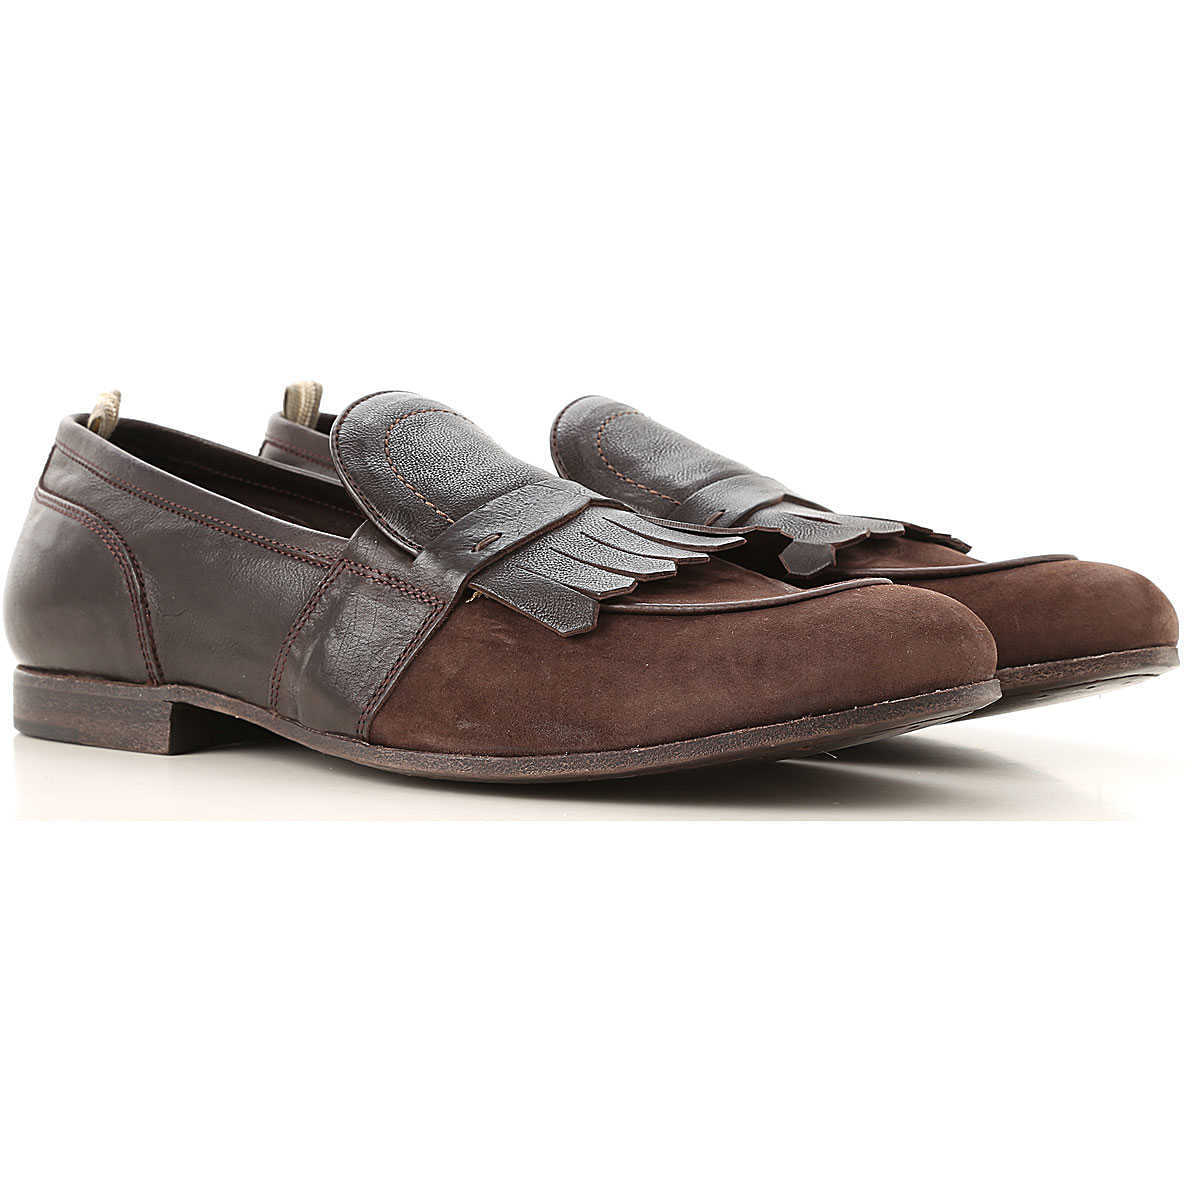 Officine Creative Loafers for Men On Sale Chocolate DK - GOOFASH - Mens LOAFERS